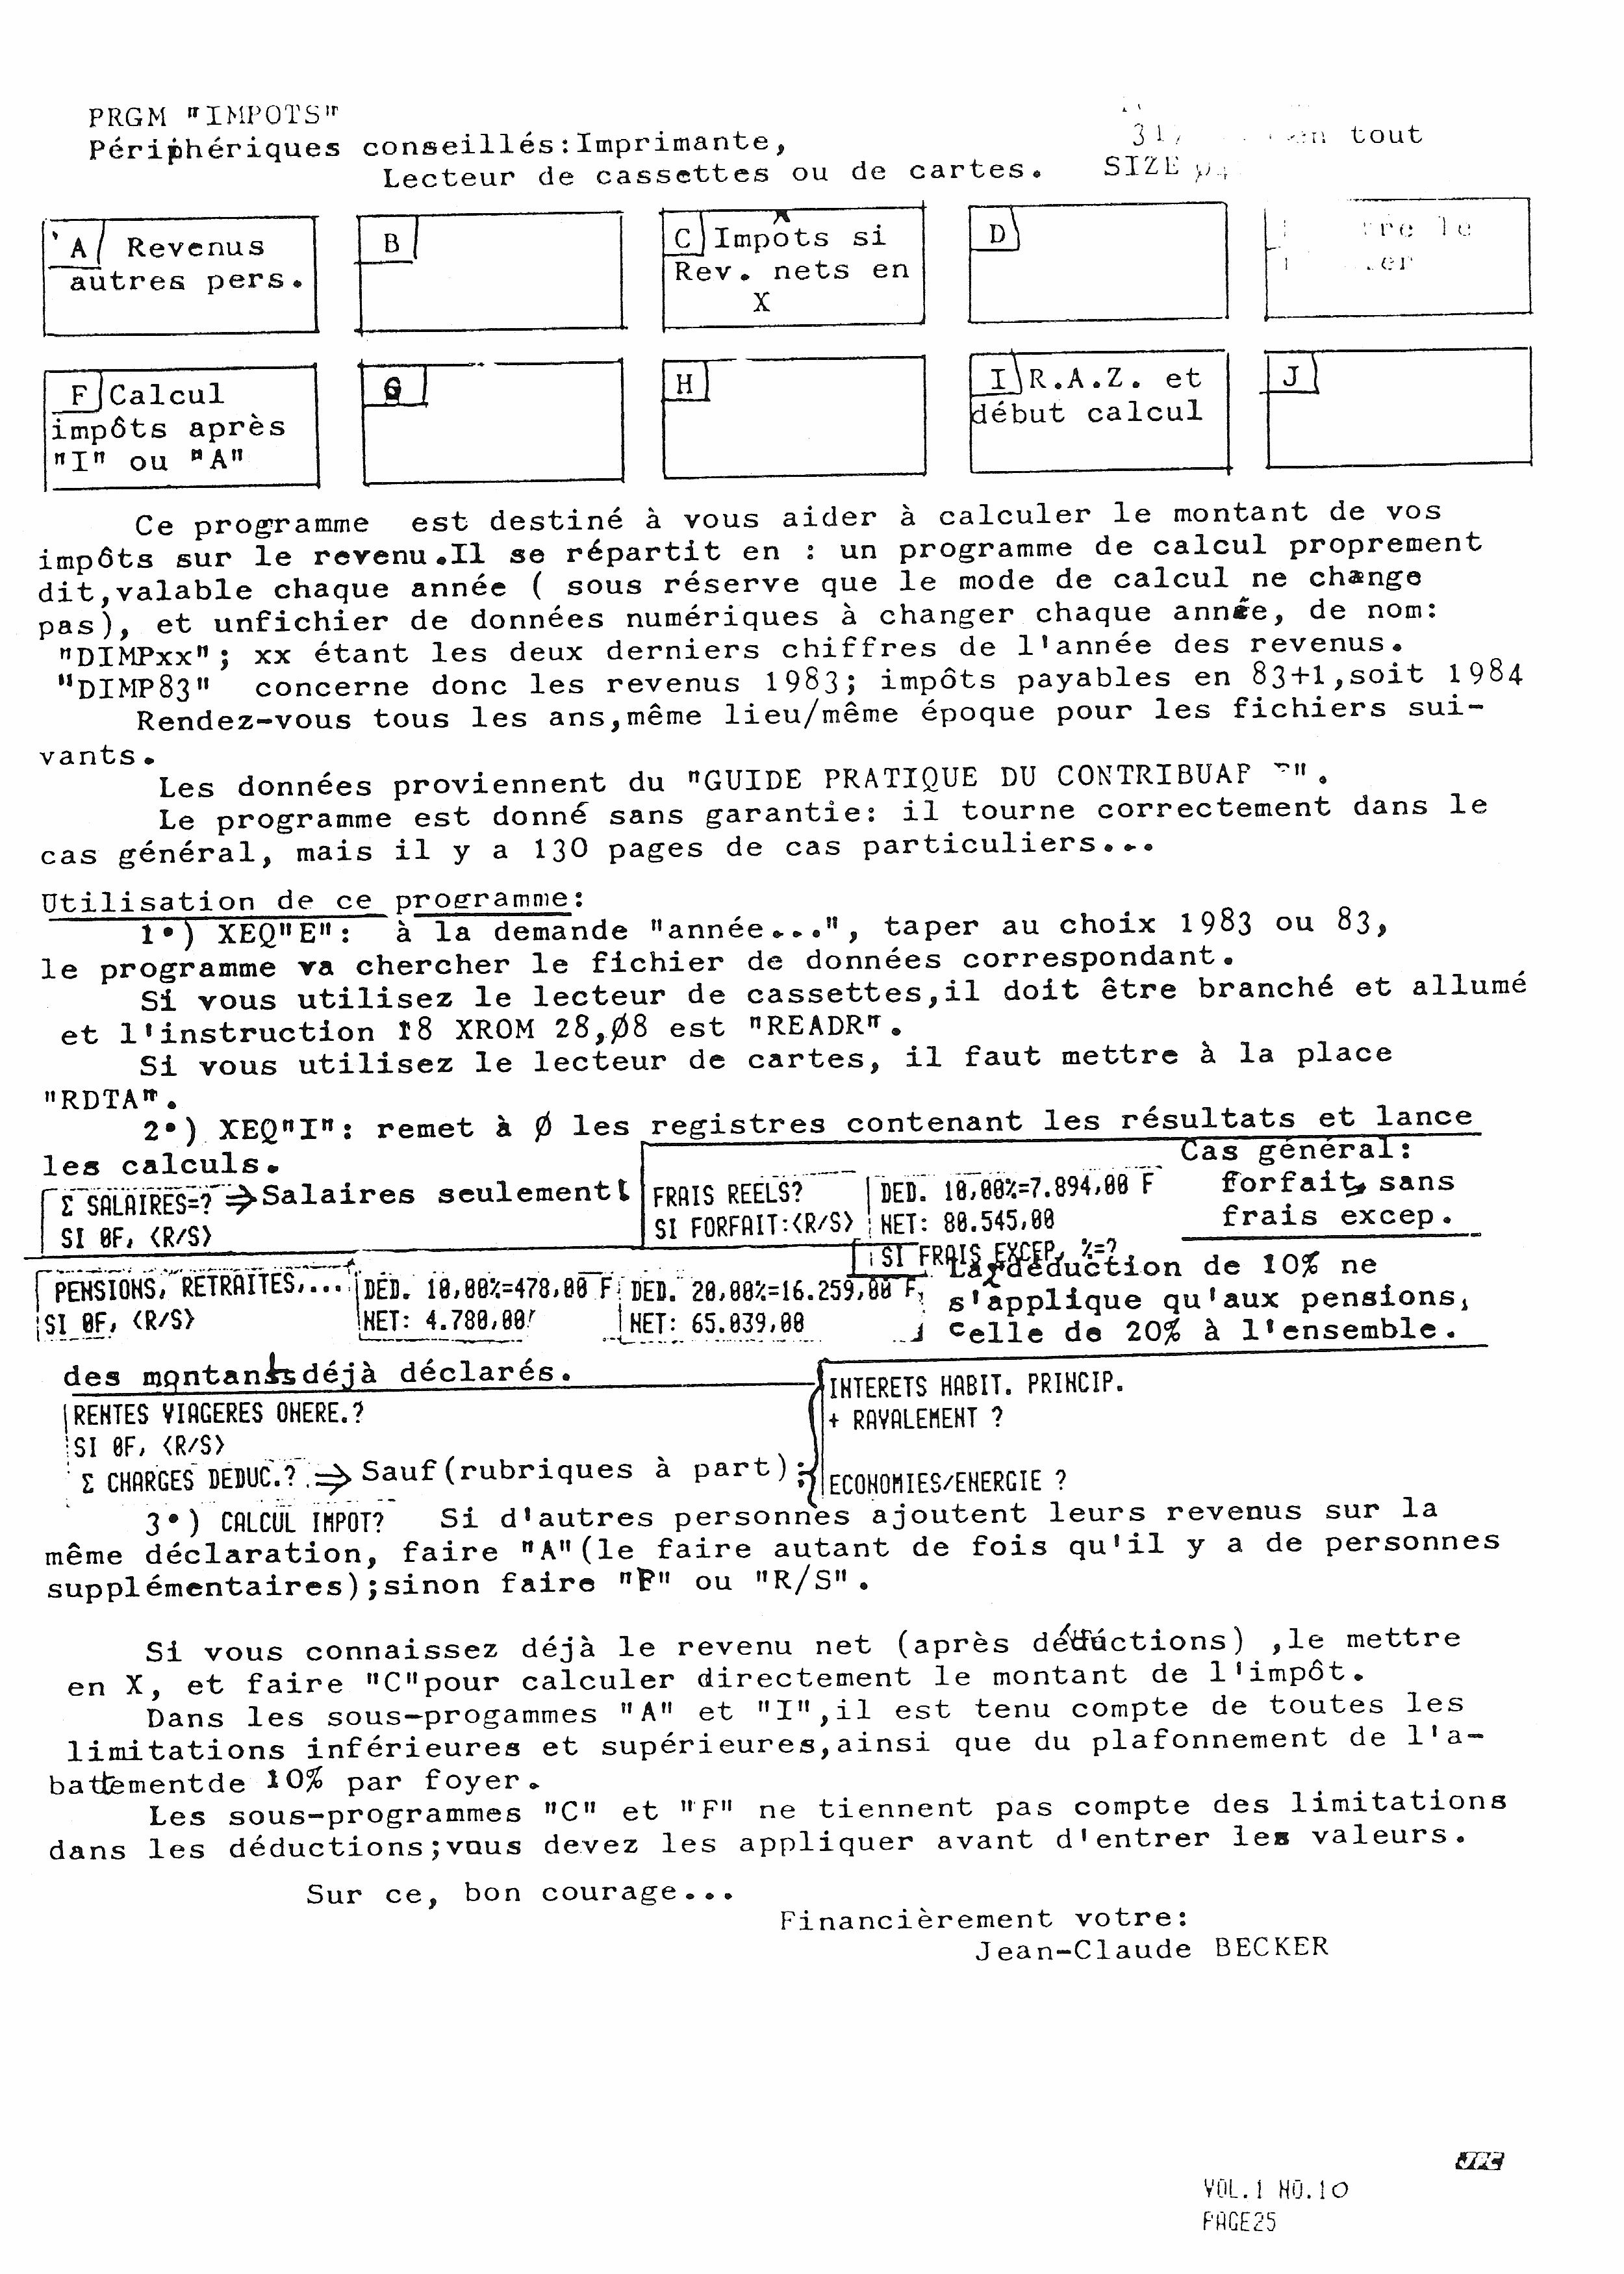 Jp-10-page-25-1000